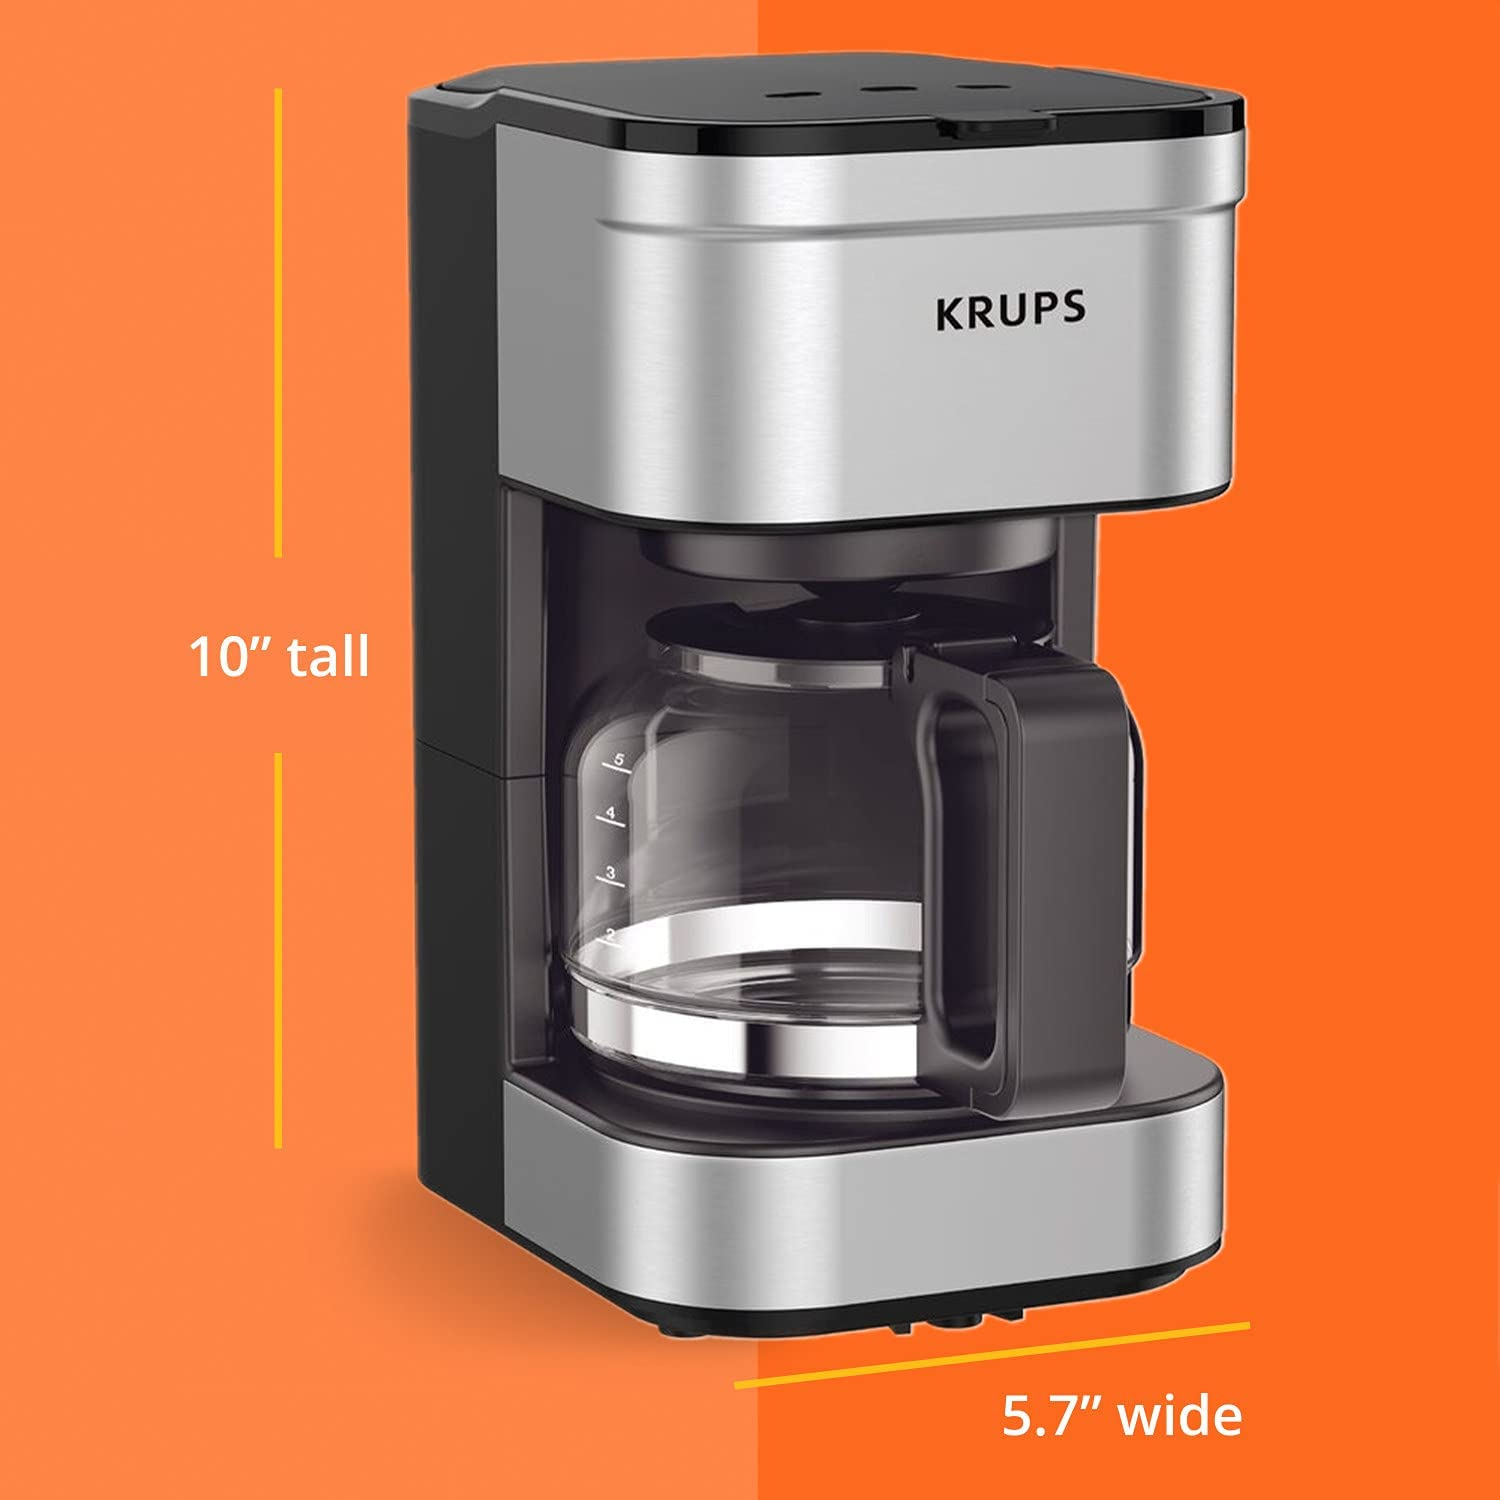 KRUPS Simply Brew Compact